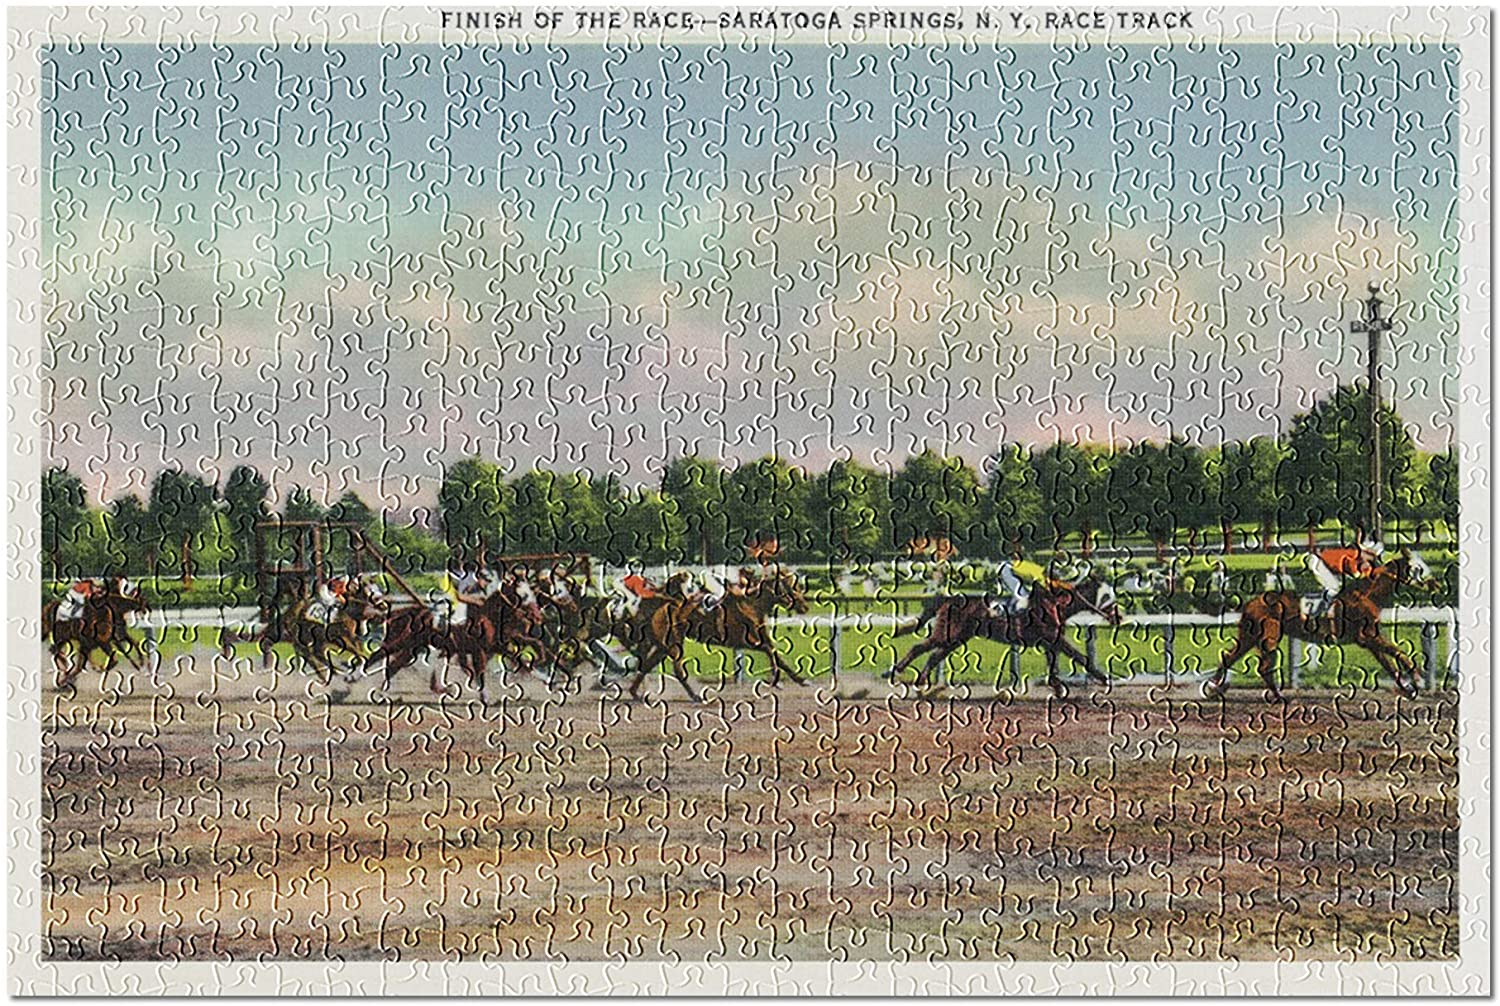 Saratoga Springs, New York - Jockeys Finishing Horse Race at Race Track (Premium 500 Piece Jigsaw Puzzle for Adults, 13x19)